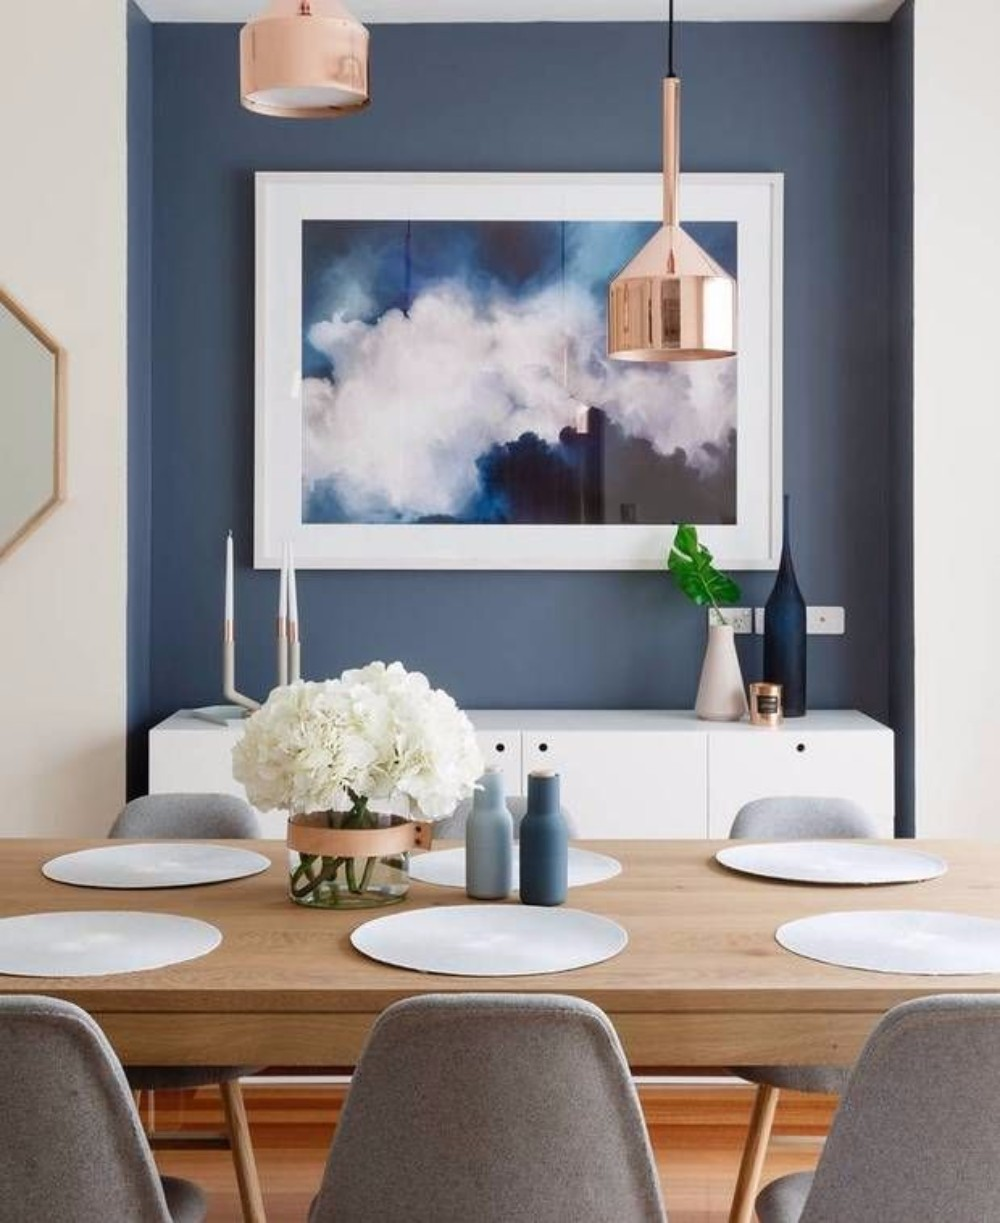 gray Gray and Wood: A Match Made in Design Heaven for your Dining Room 3c5586d094eb9c8d856a1ecc9dba975a